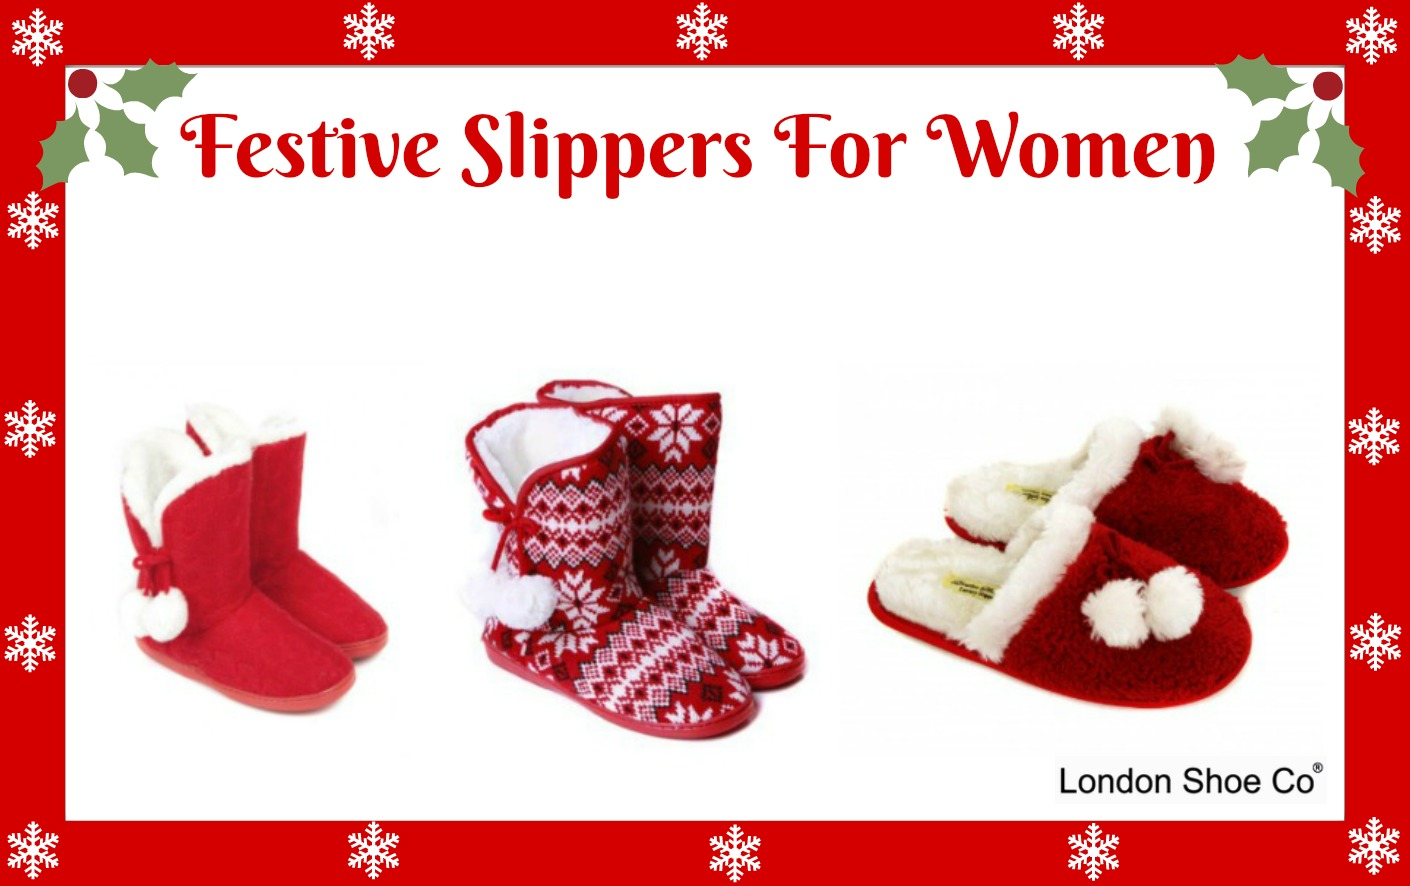 festive-slippers-for-women